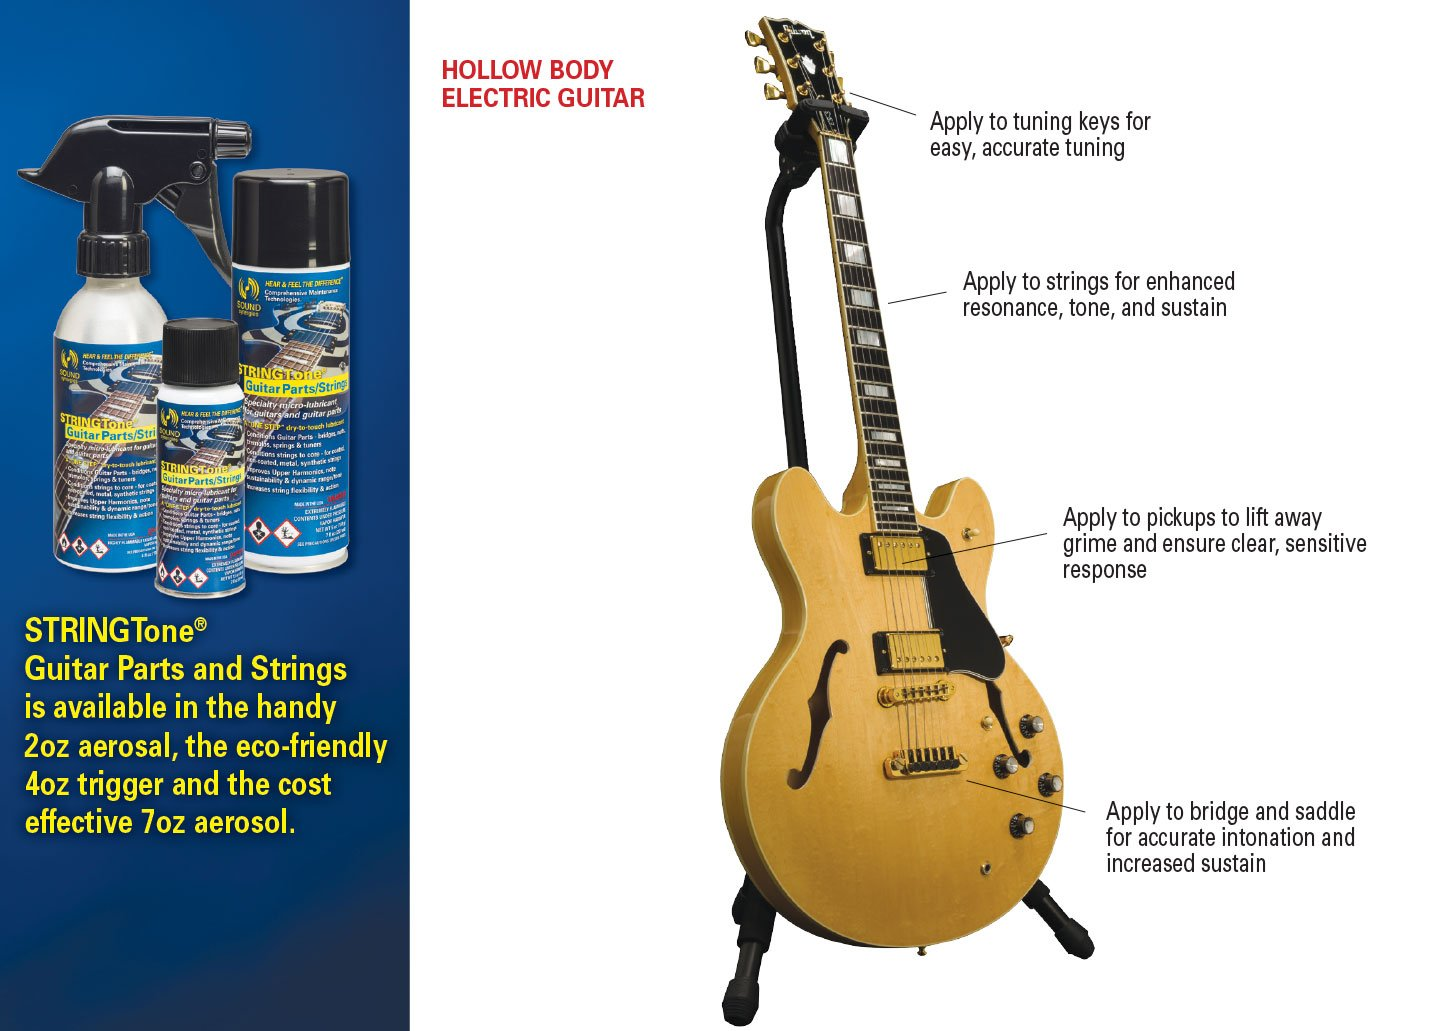 Stringtone For All Instrument Strings String Lubricant Parts Electric Guitar And Conditioner Including Hardware